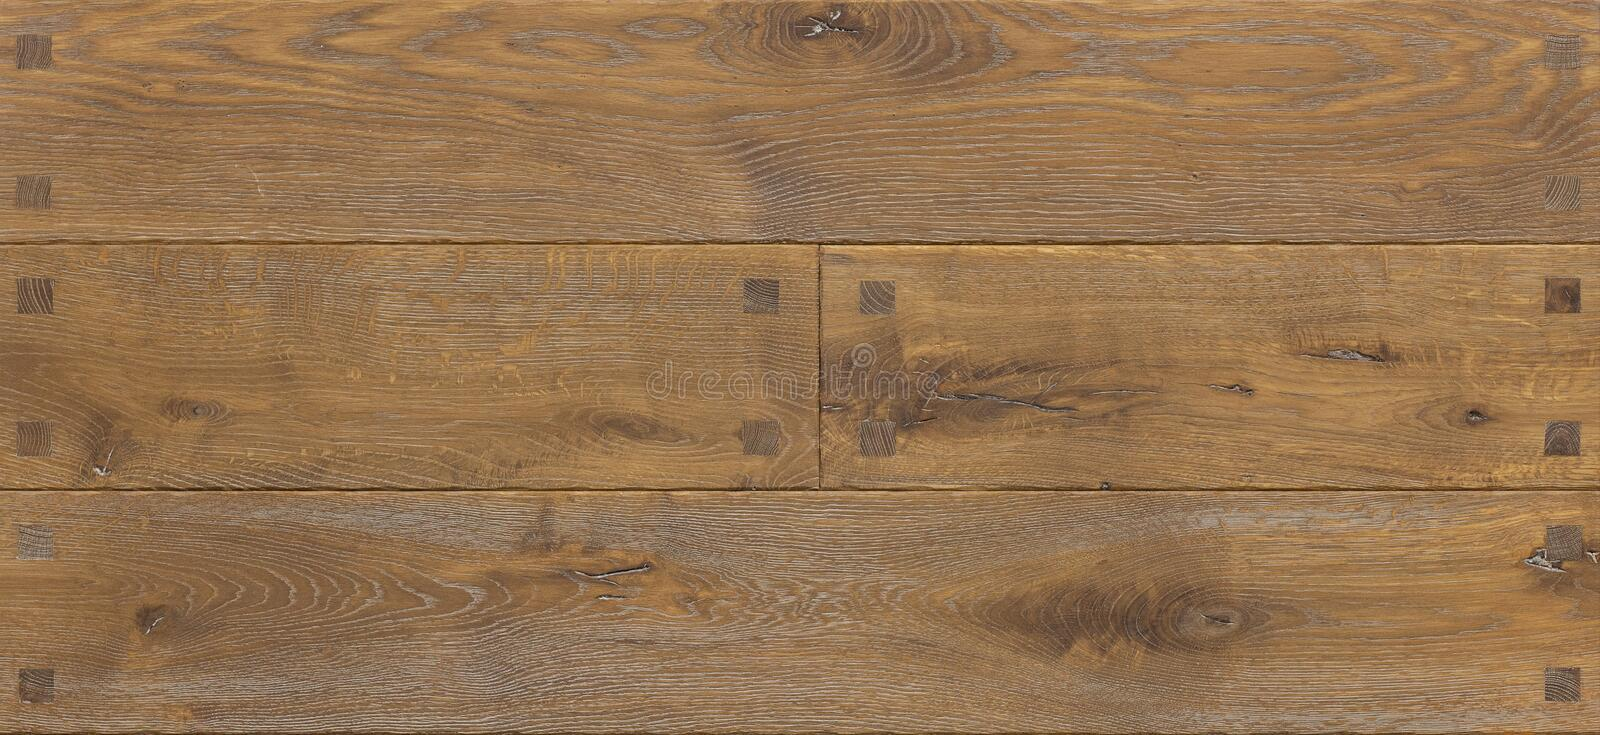 Natural wooden background, grunge parquet flooring design stock photos